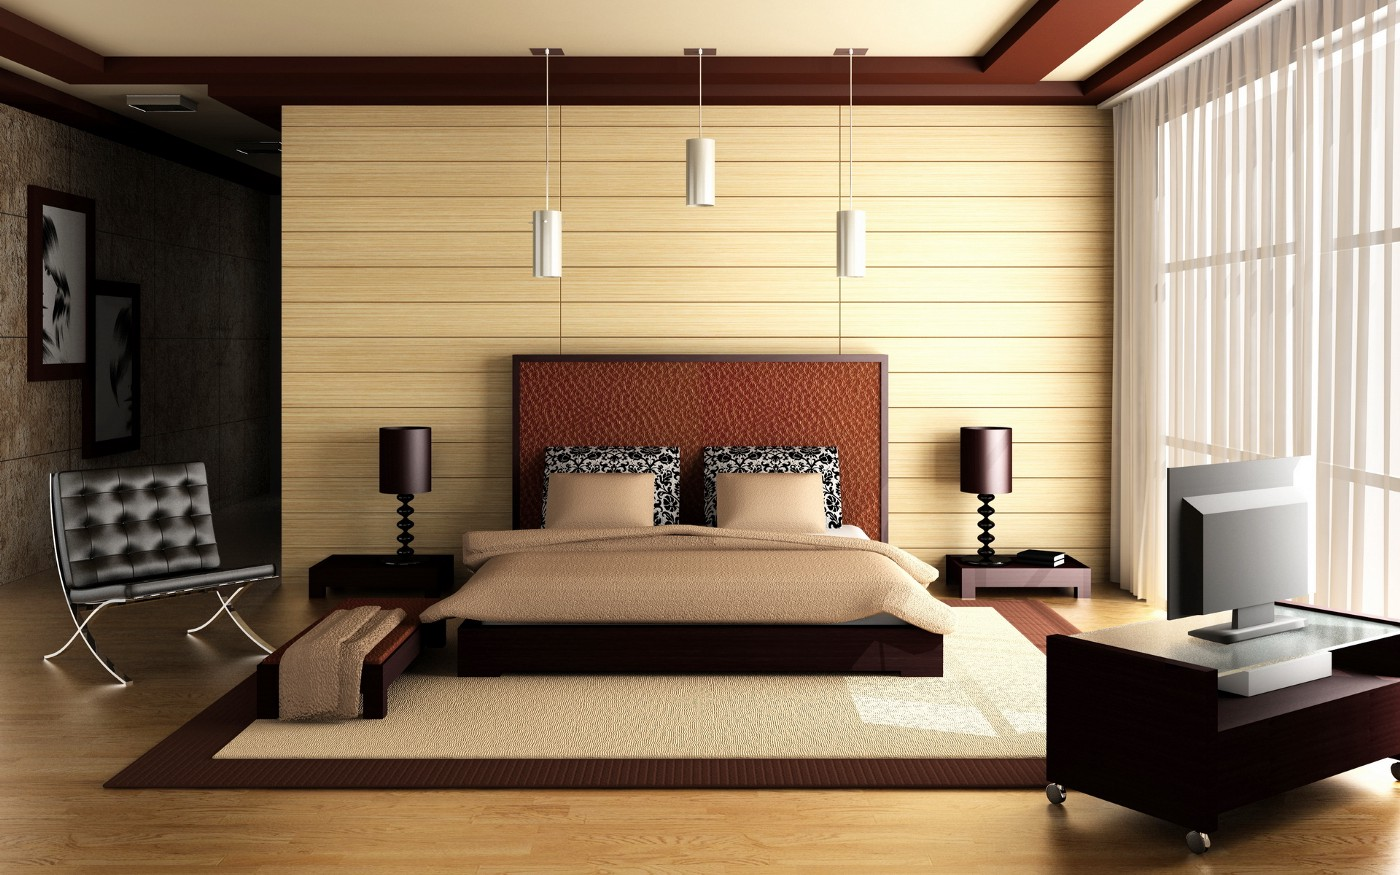 Good Bedroom Interior Designs Awesome To Modern Bedroom Design For Interior Bedroom Design Stunning Interior